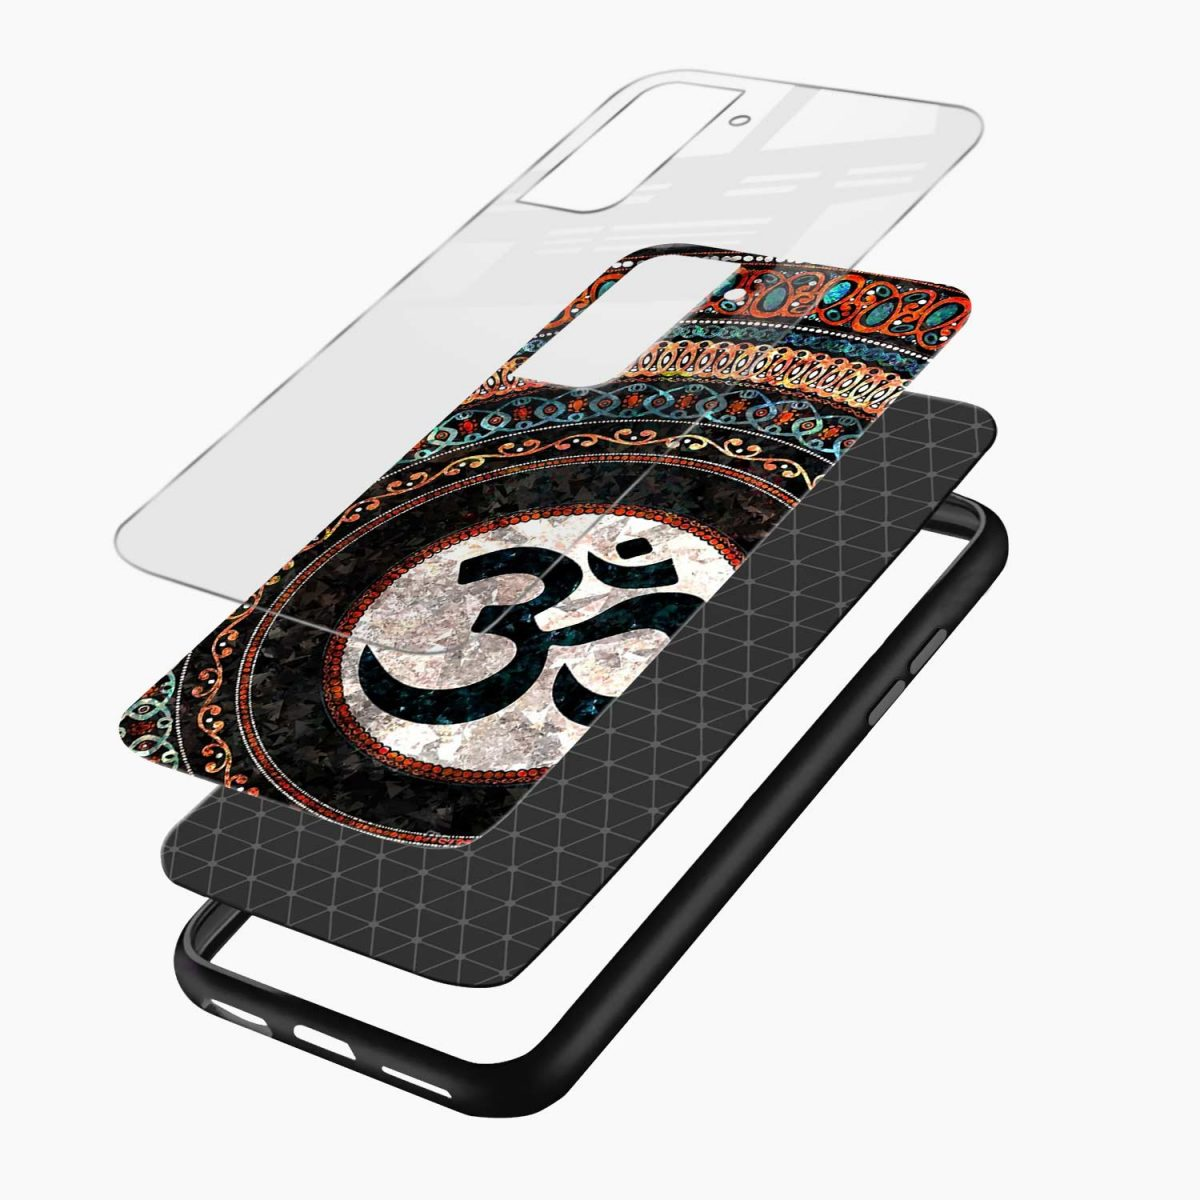 om glass layers view samsung s21 plug back cover